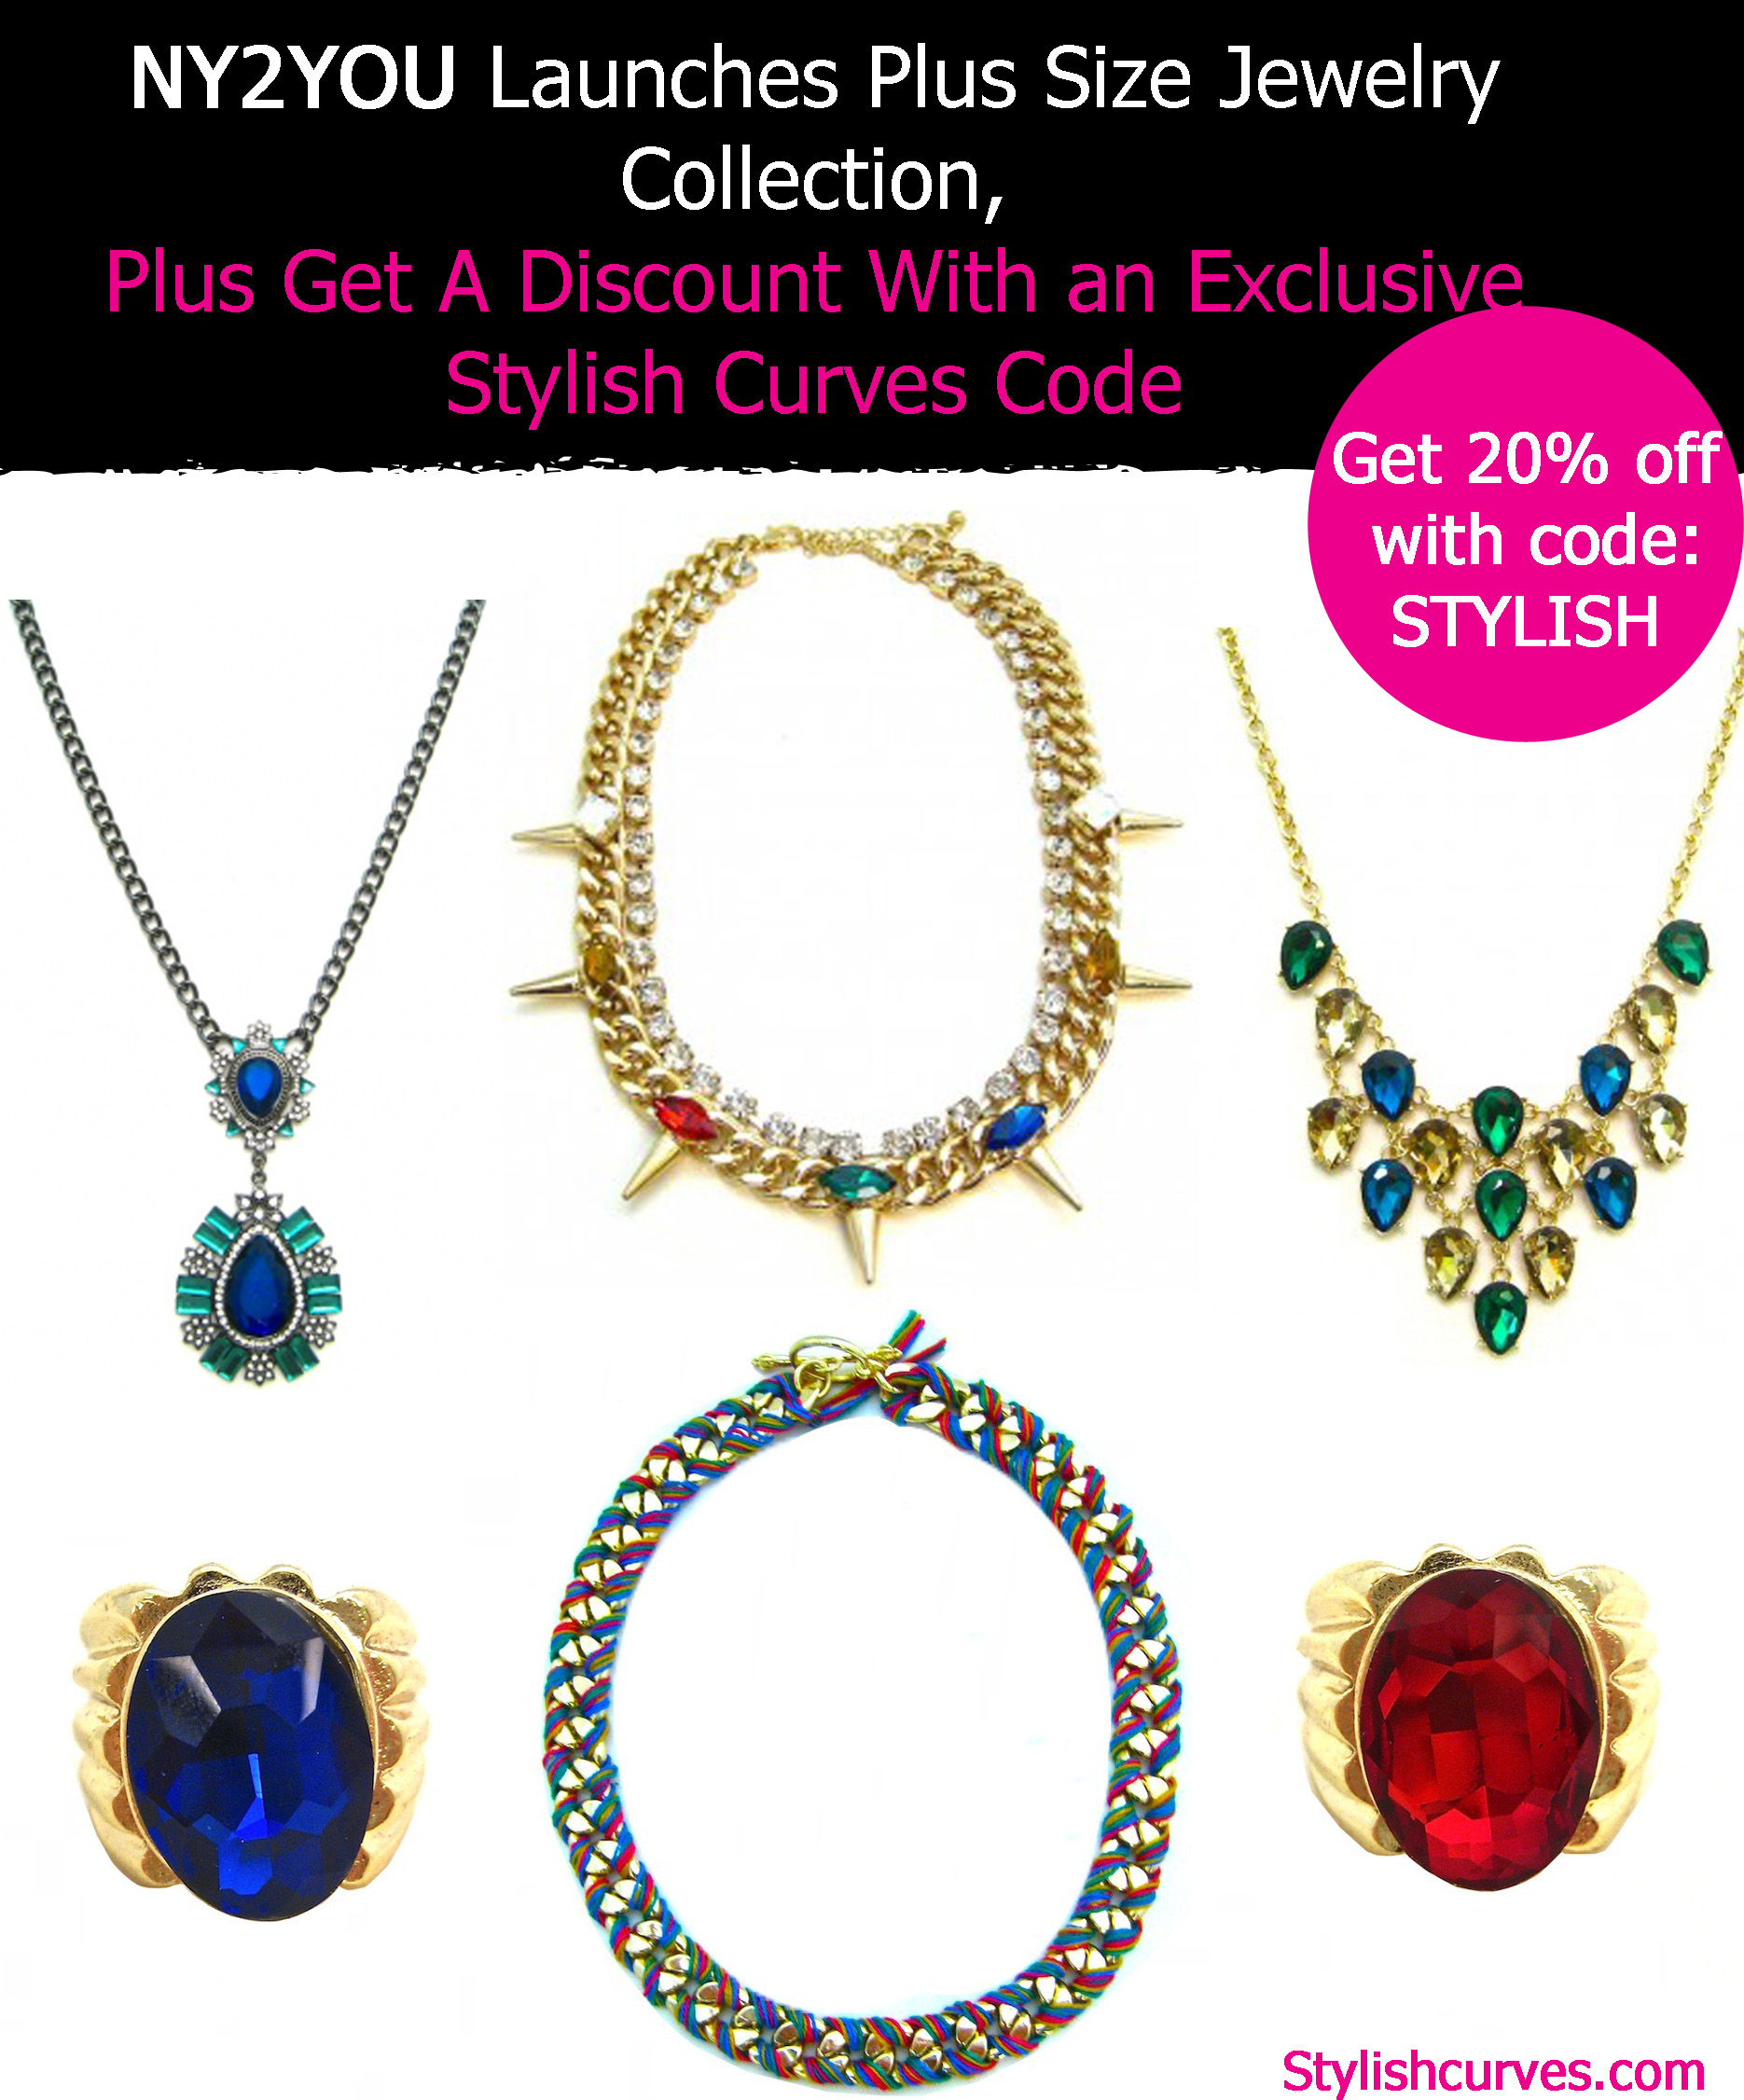 COOL JEWELS: NY2YOU LAUNCHES PLUS SIZE JEWELRY COLLECTION ...